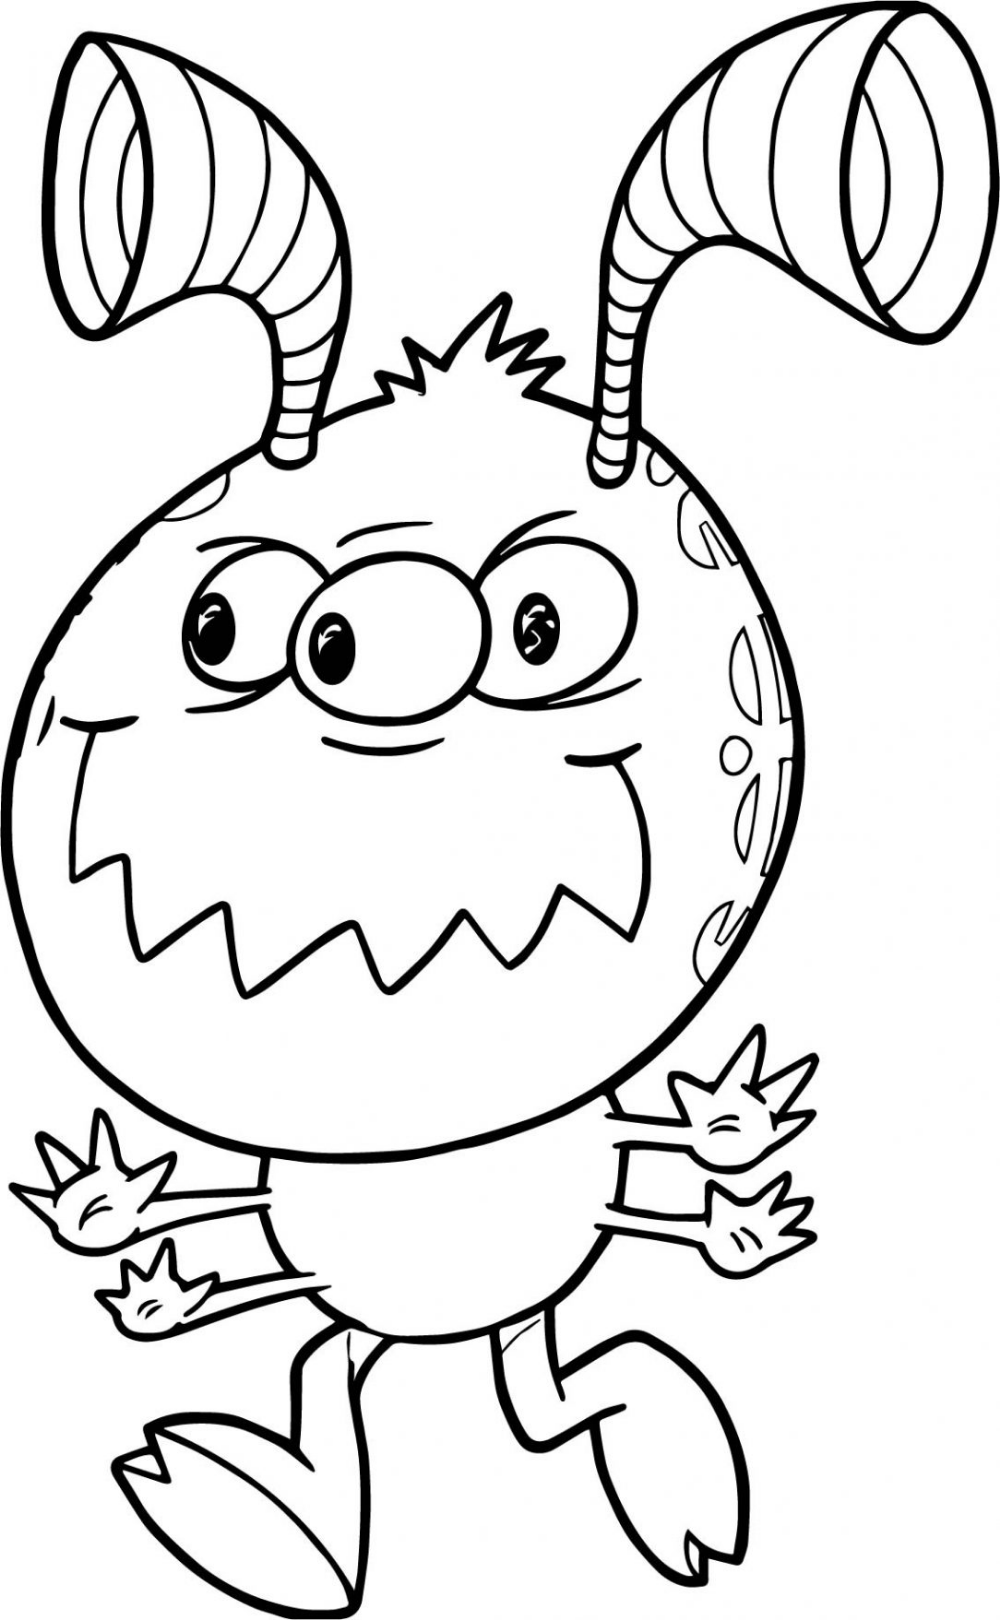 alien coloring pages - Google Search | Monster coloring ...